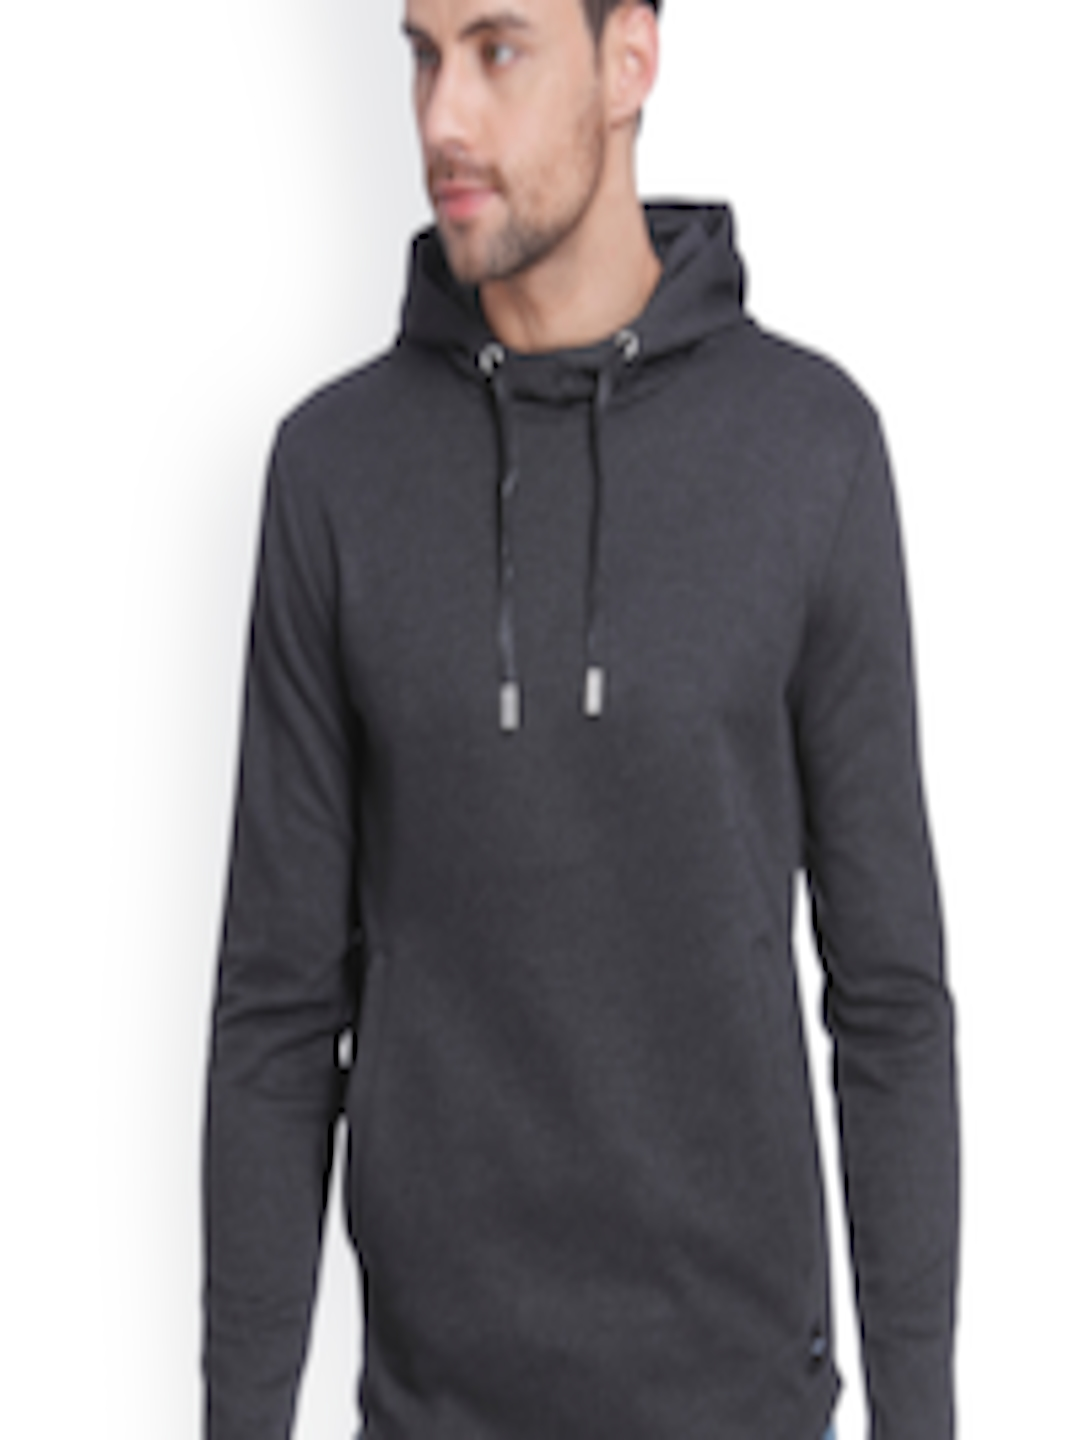 Men Charcoal Solid Hooded Sweatshirt by Only & Sons